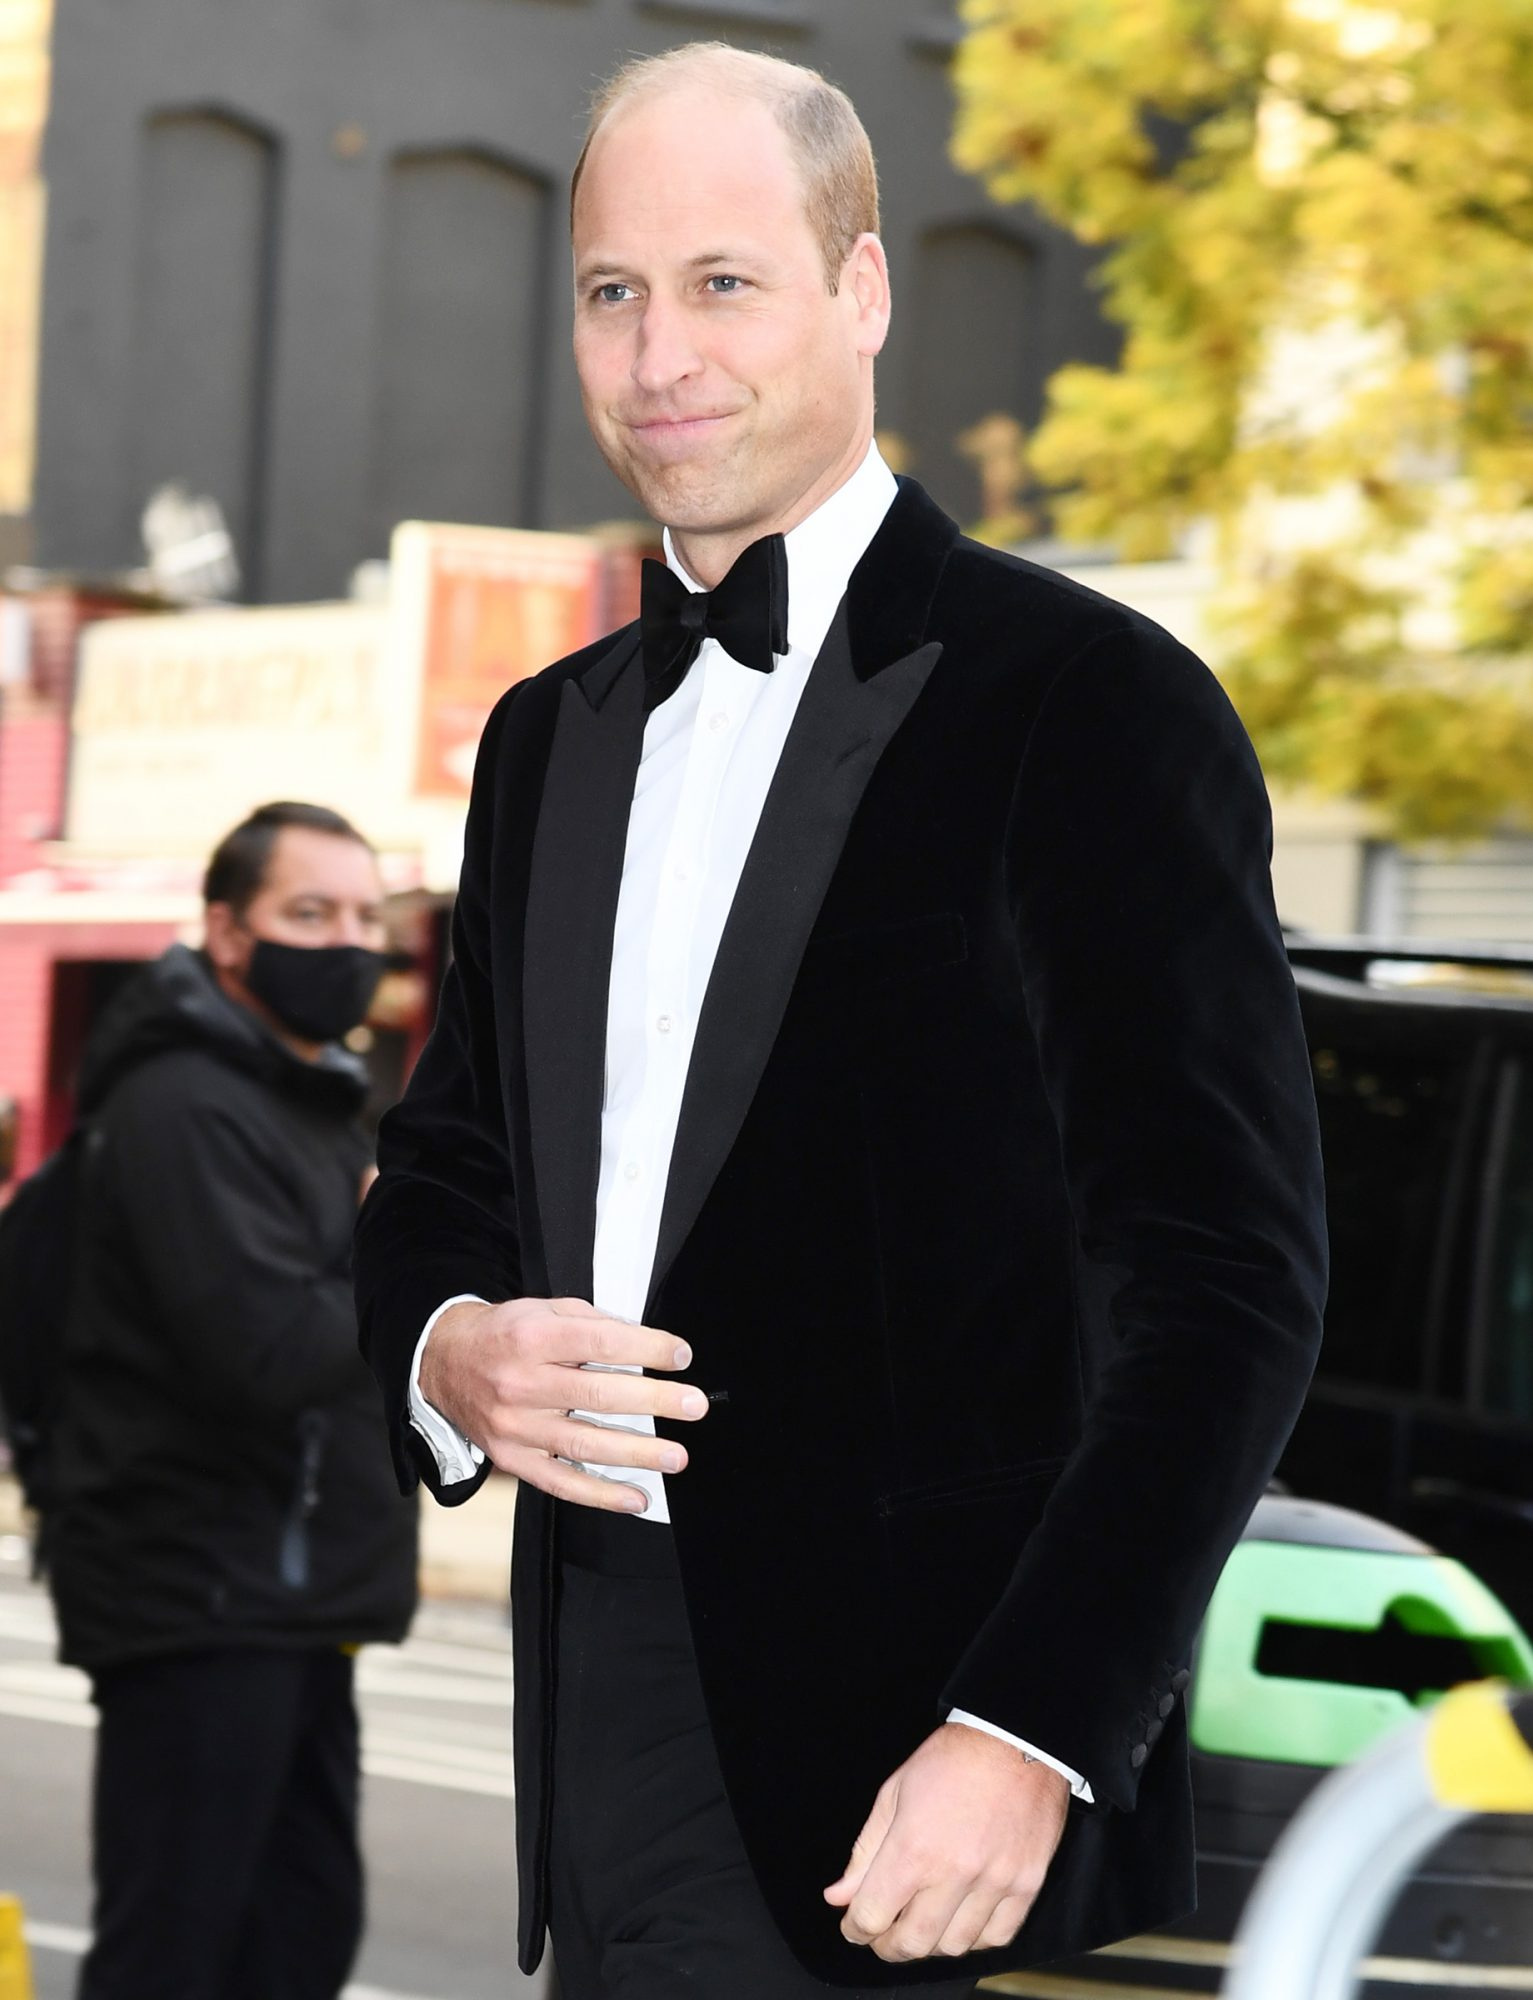 The Duke of Cambridge attends the Sun's Who Cares Wins Awards 2021 at The Roundhouse on September 14, 2021 in London, England